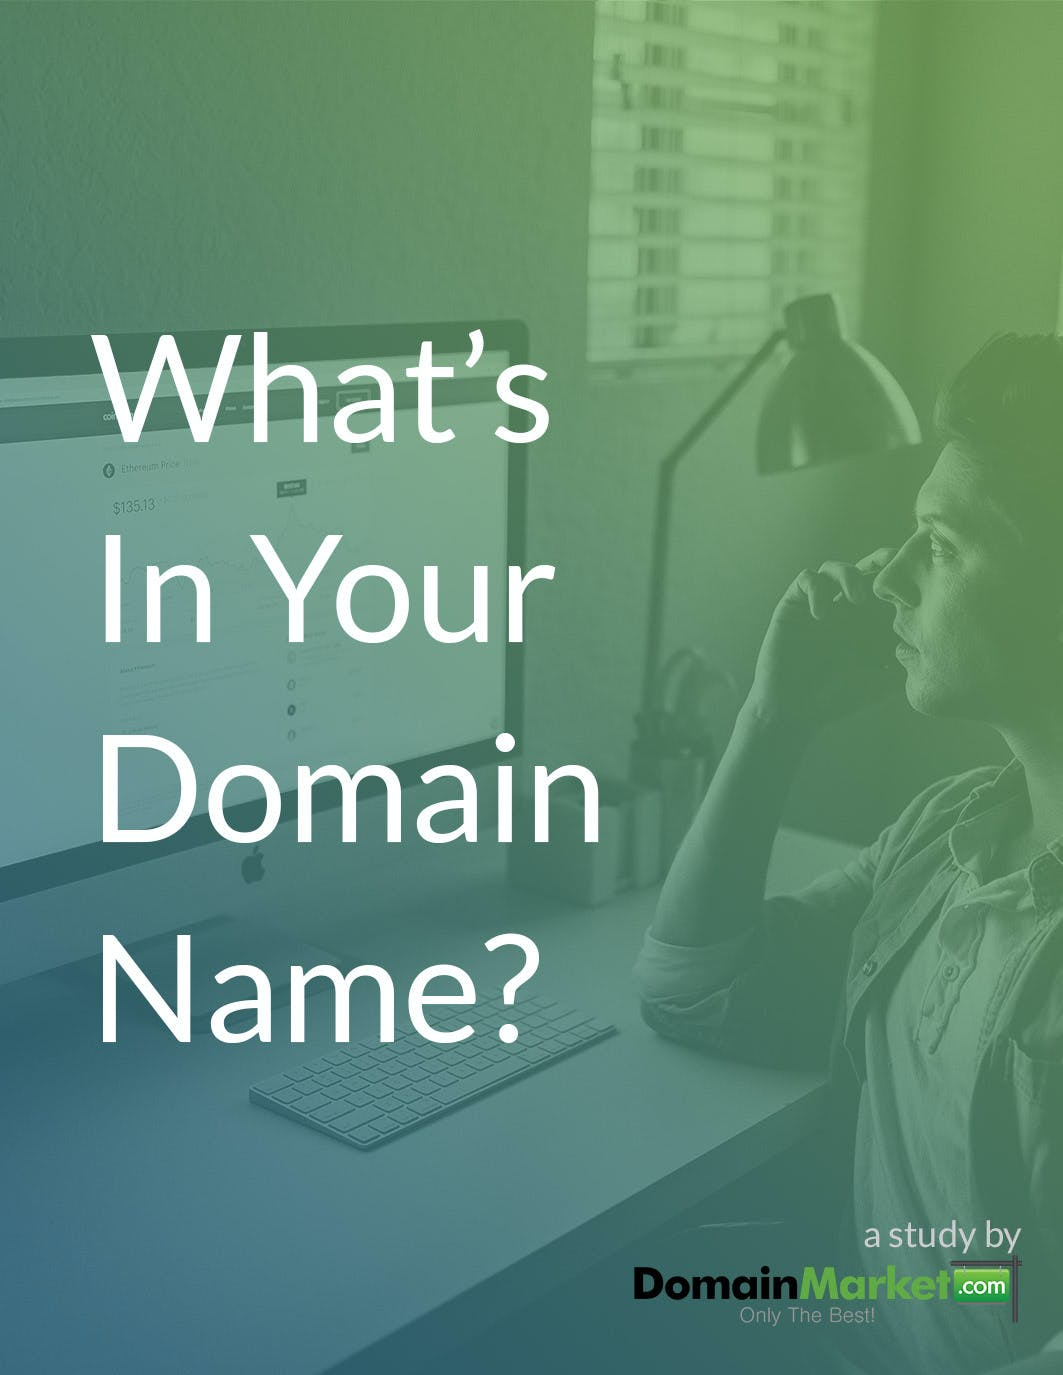 What's in your Domain Name?